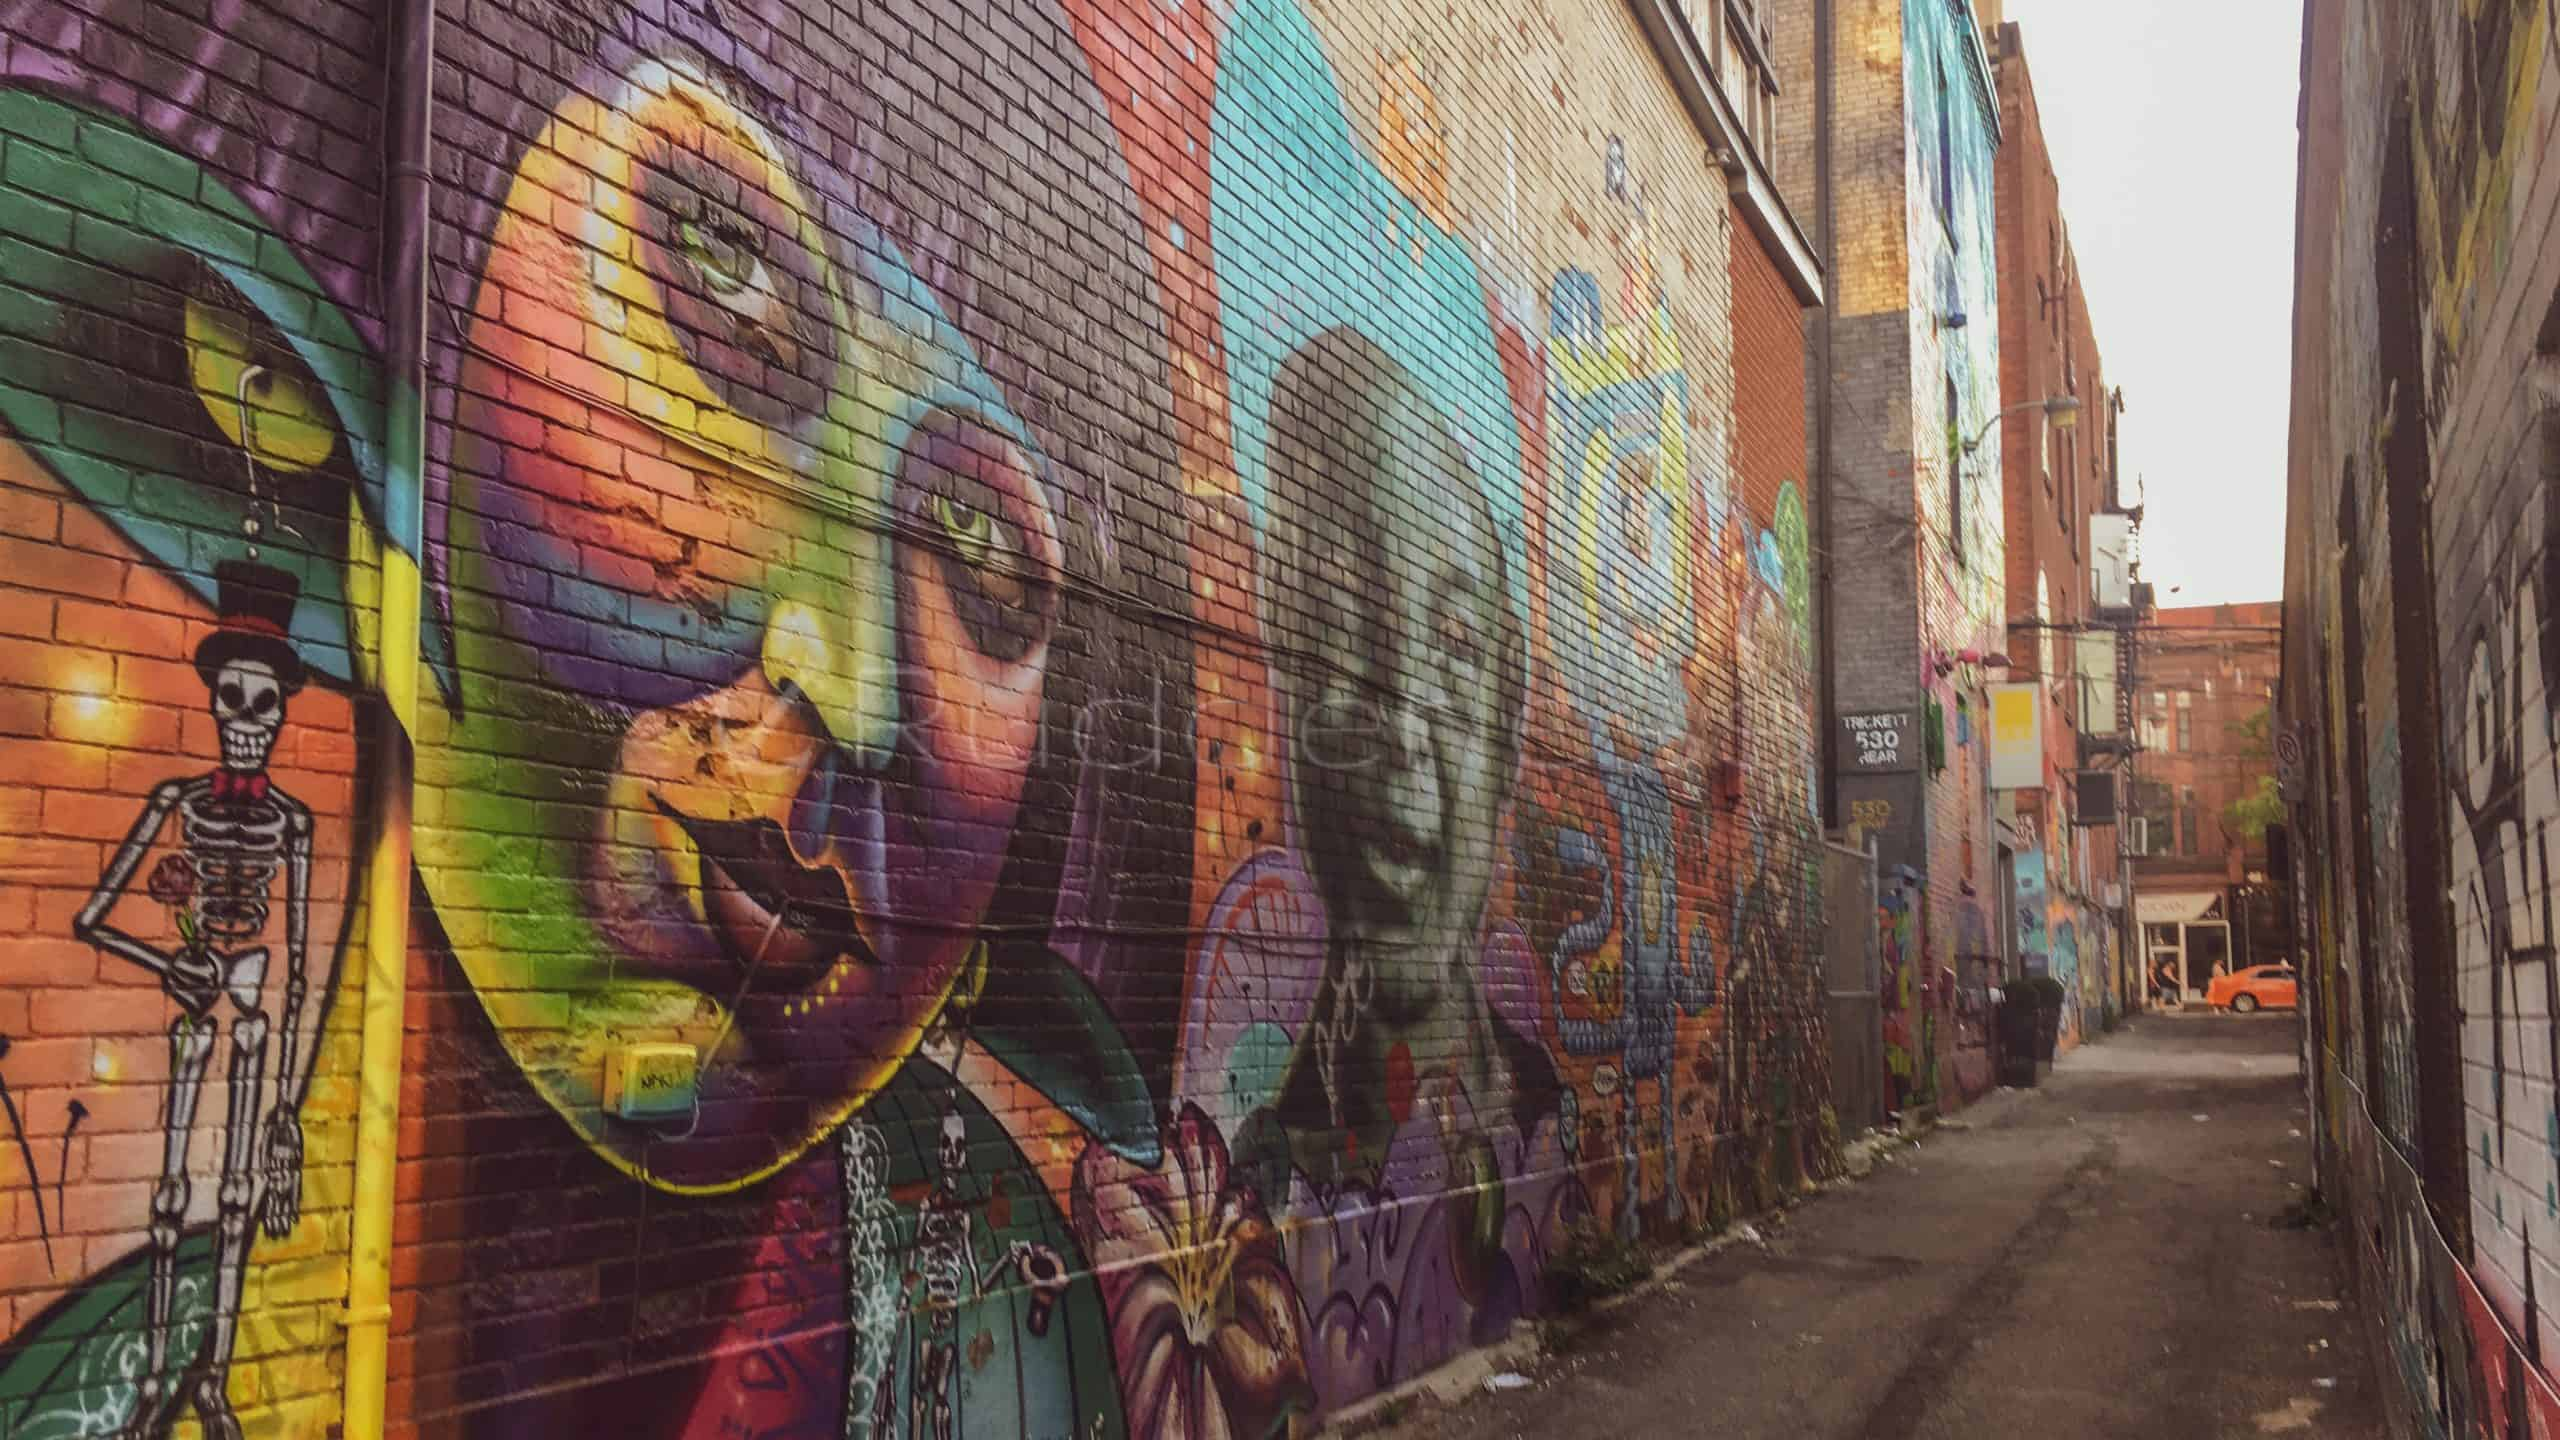 graffiti alley - stuff to do in toronto